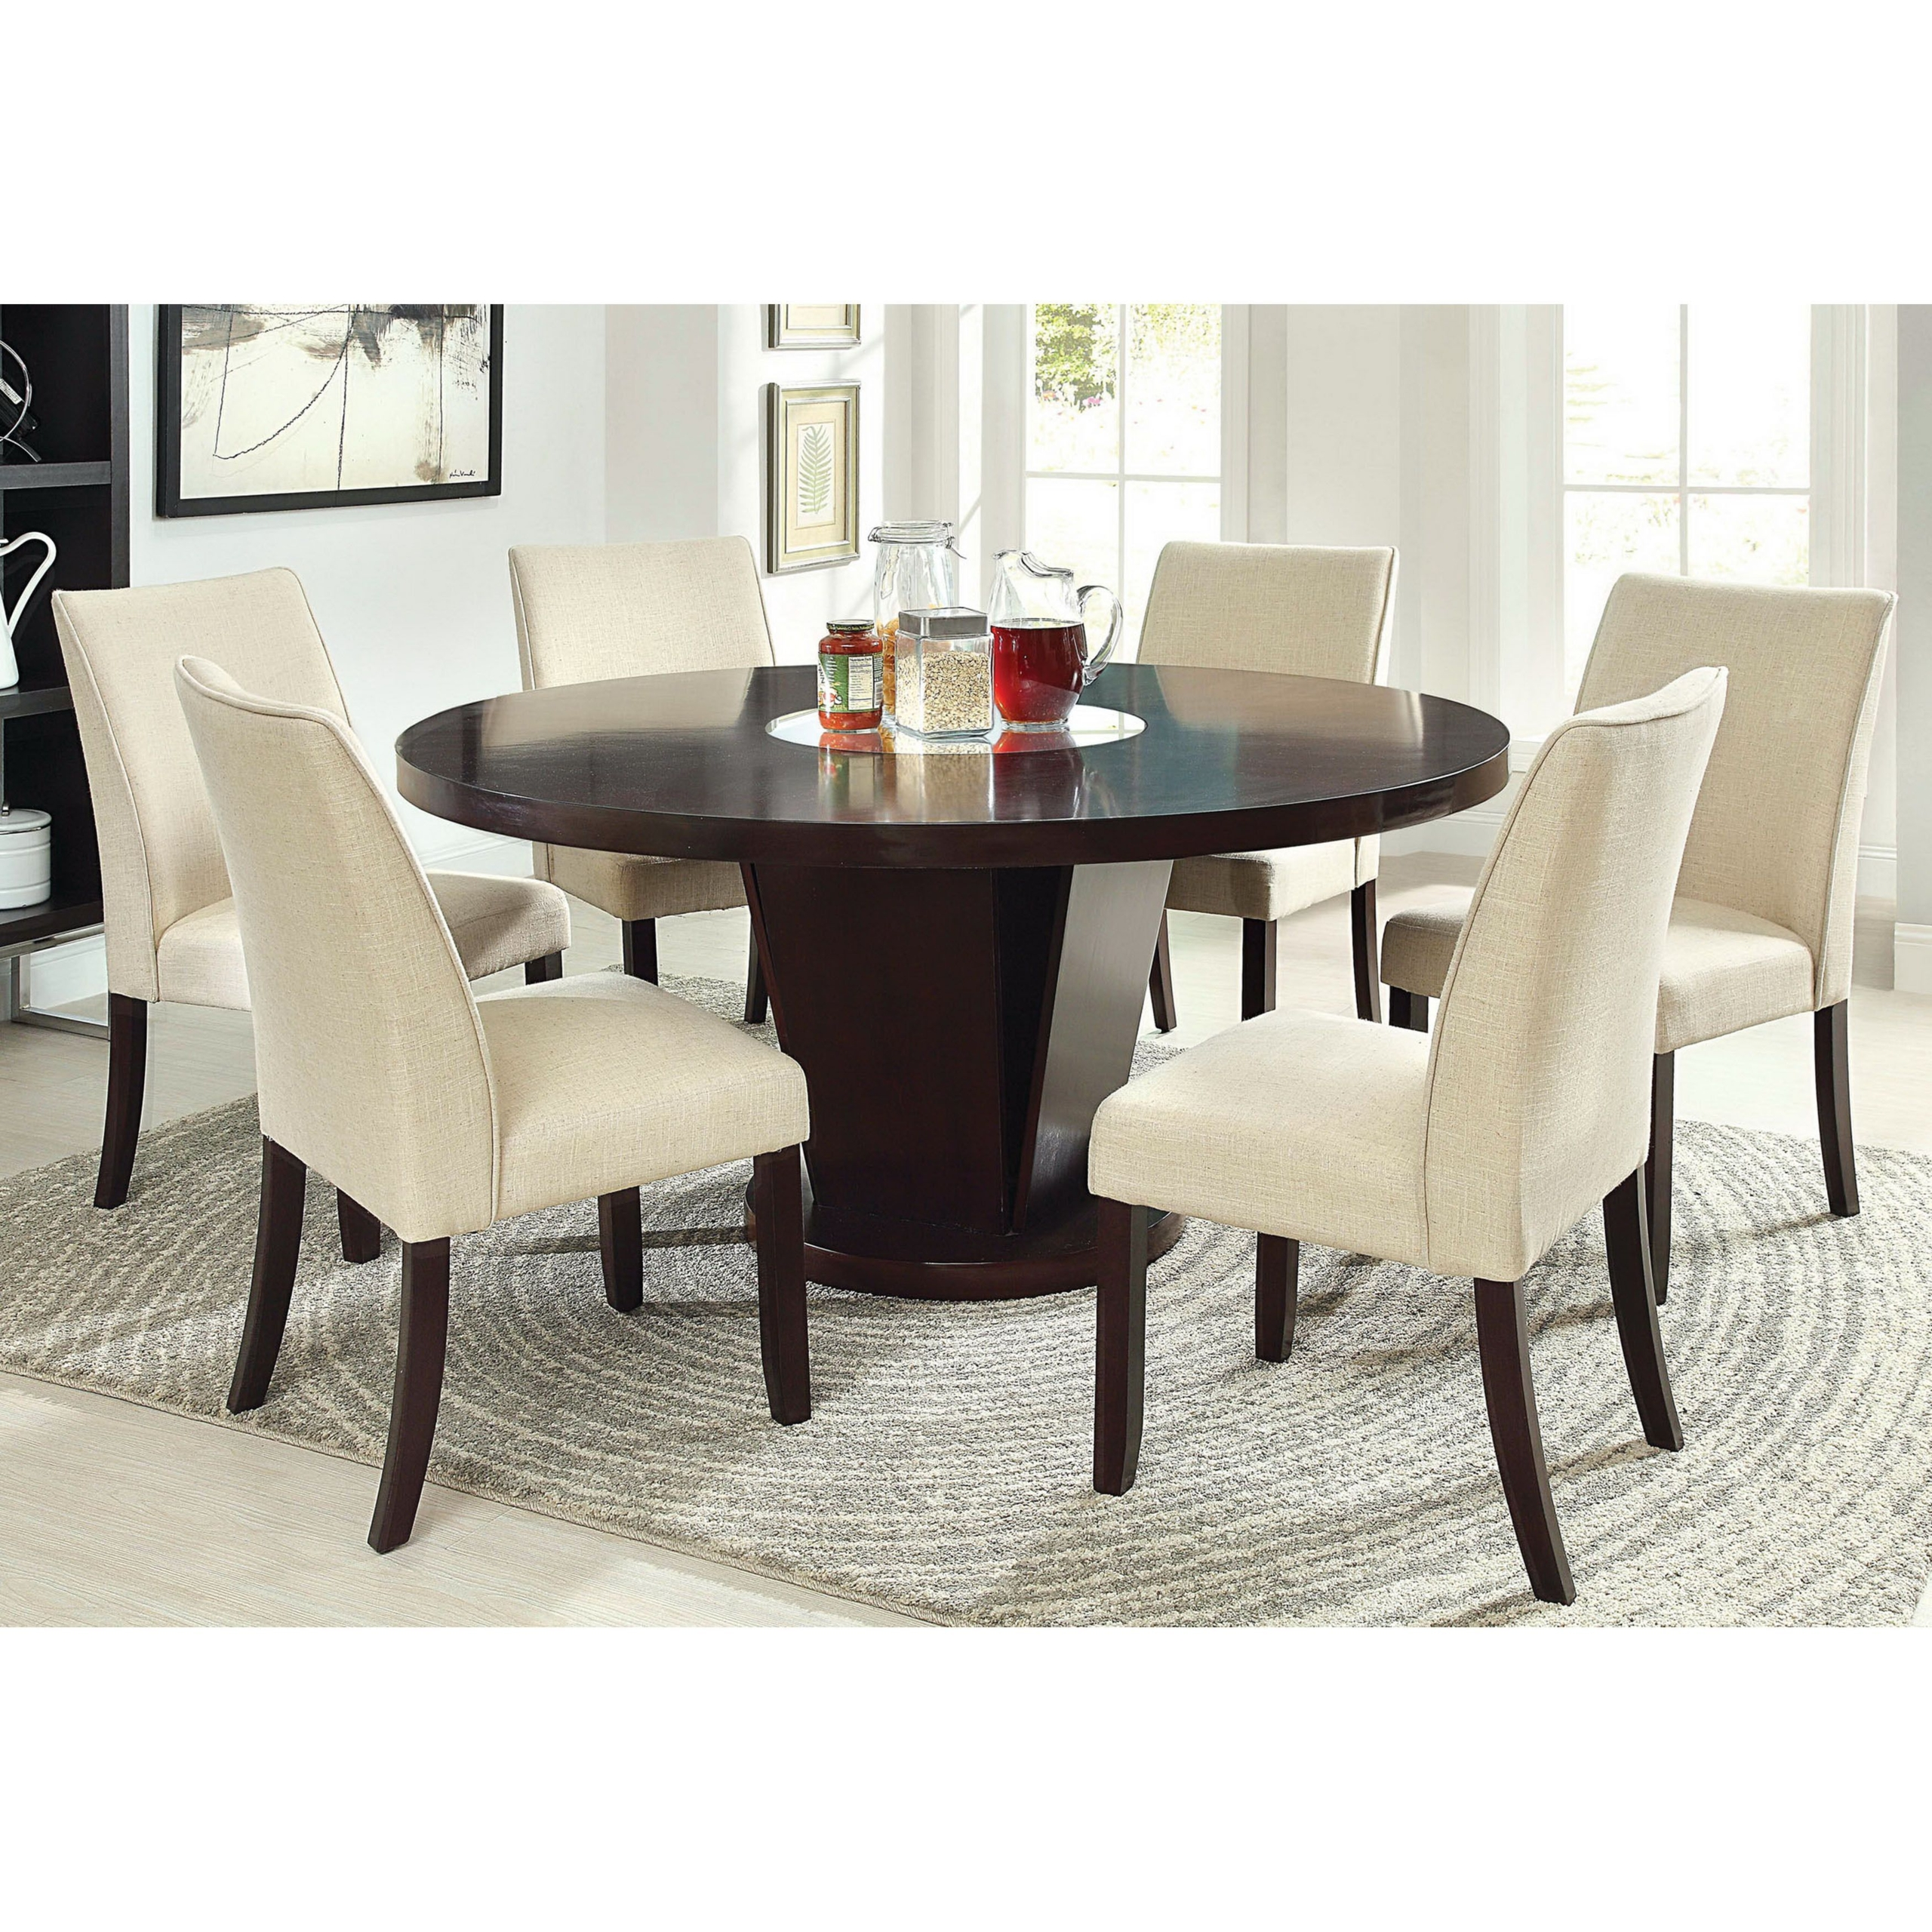 Marvelous Furniture Of America Telstars Round Dining Table With Lazy Susan,  Espresso